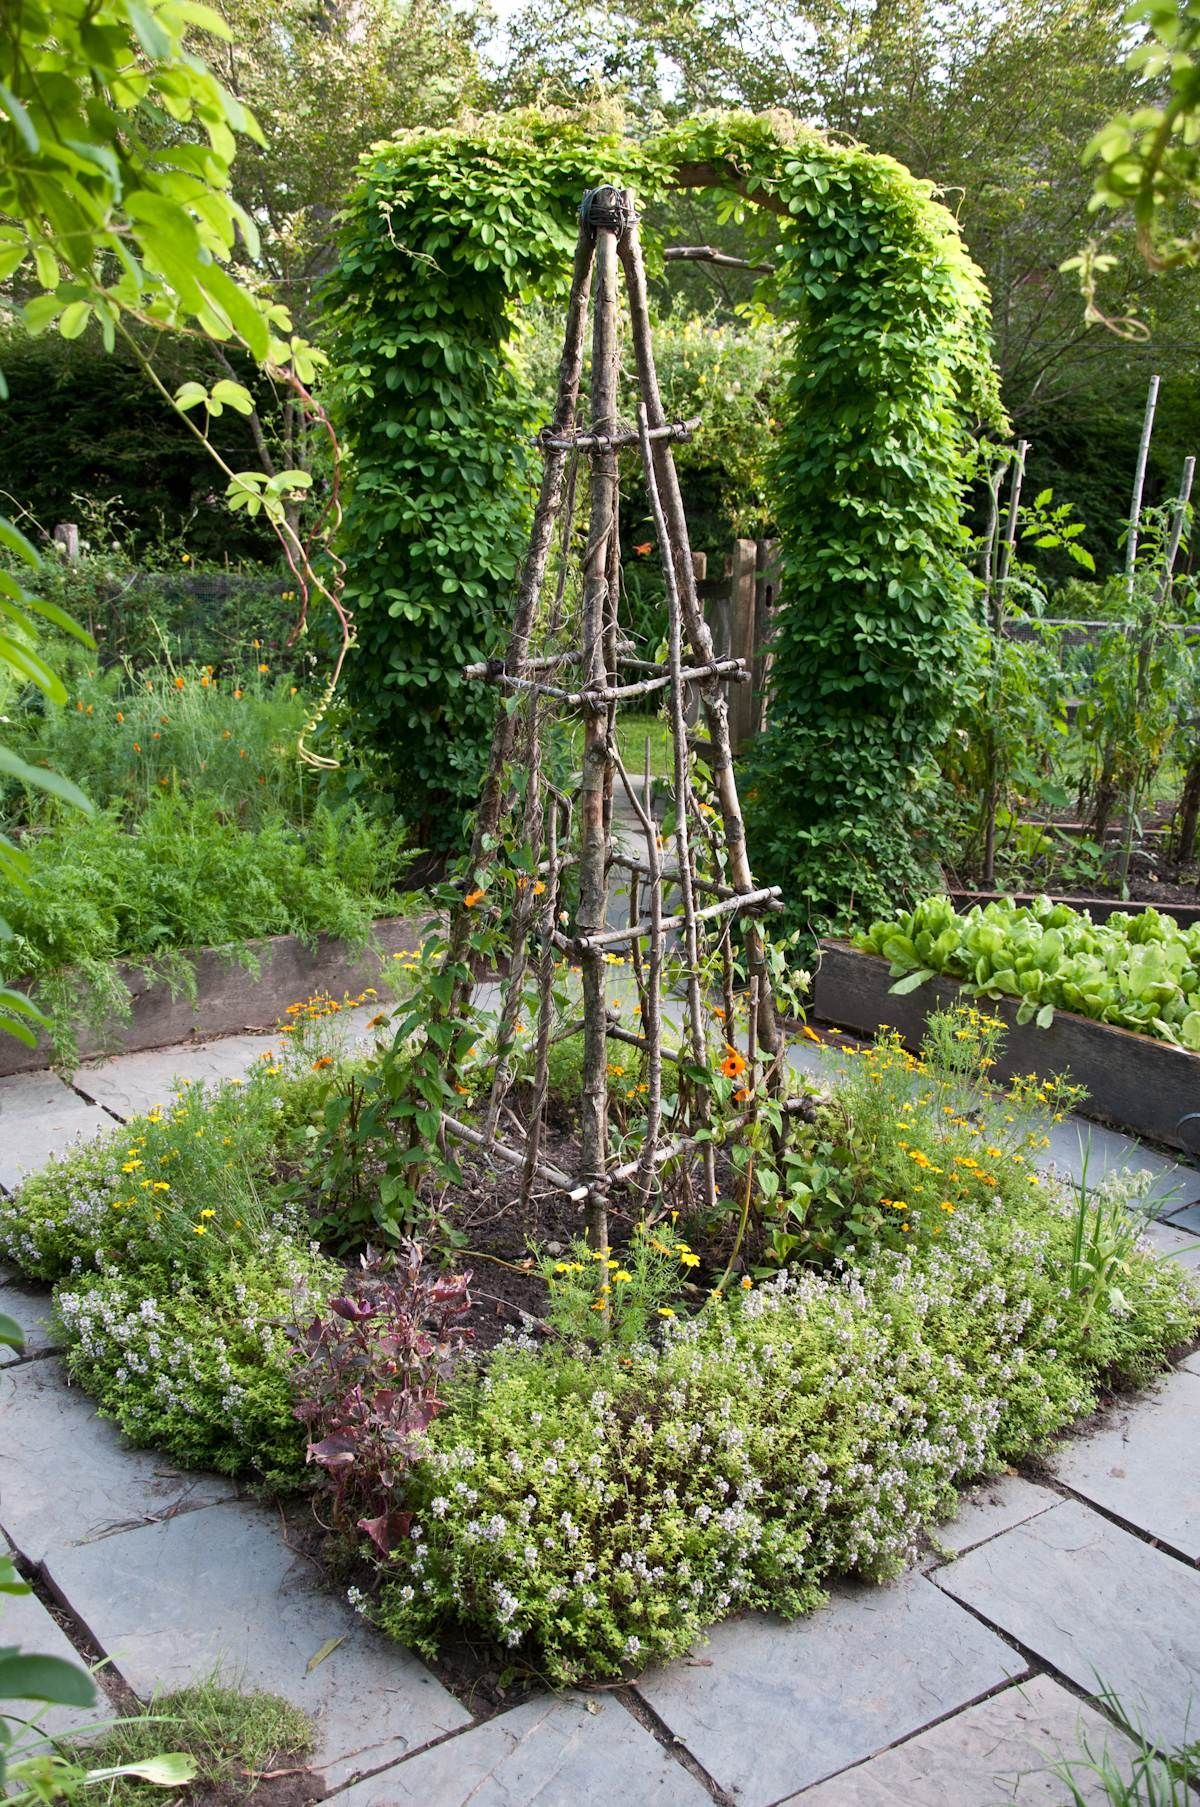 Rustic Tuteur Trellis with herbs in the center of a Potager